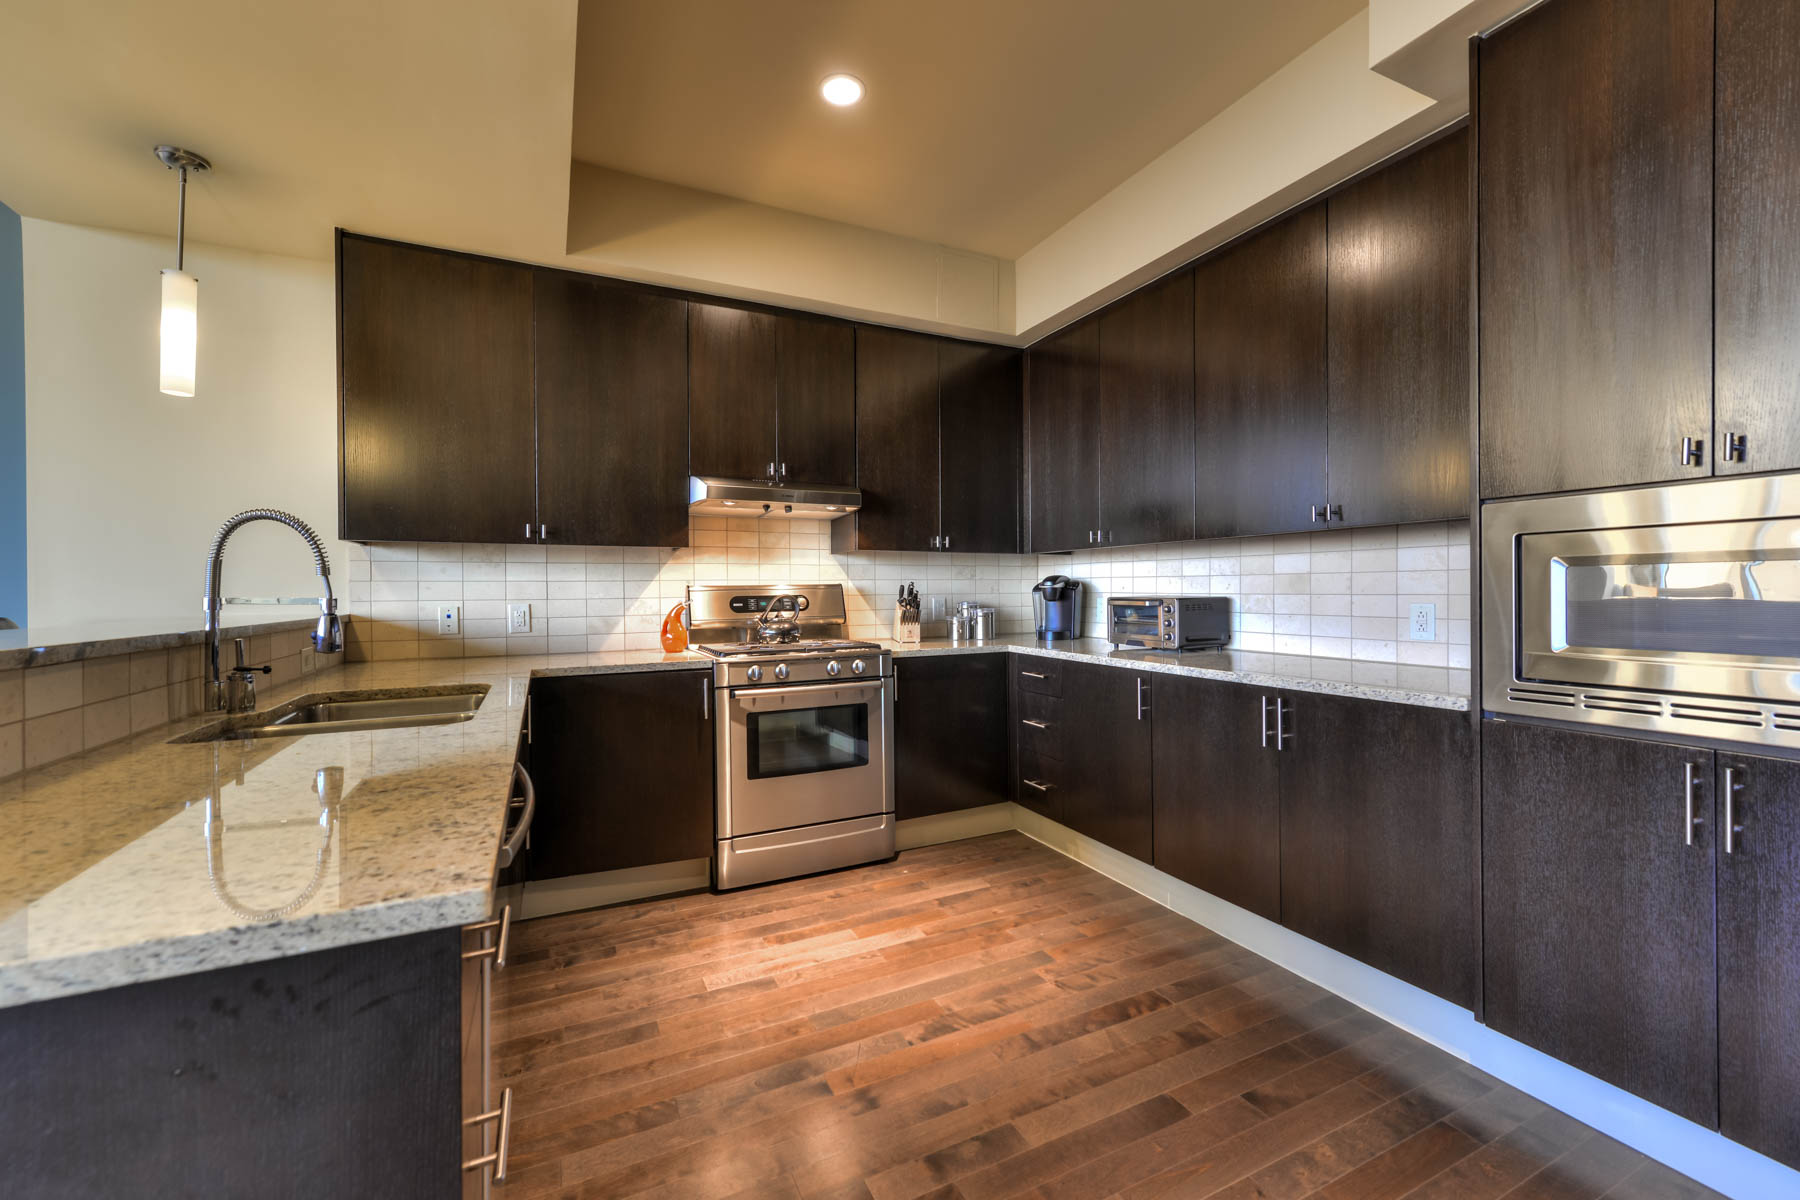 Additional photo for property listing at Enjoy Endless Possibilities at the Alteza 610 E Market St 3106 San Antonio, Texas 78205 United States